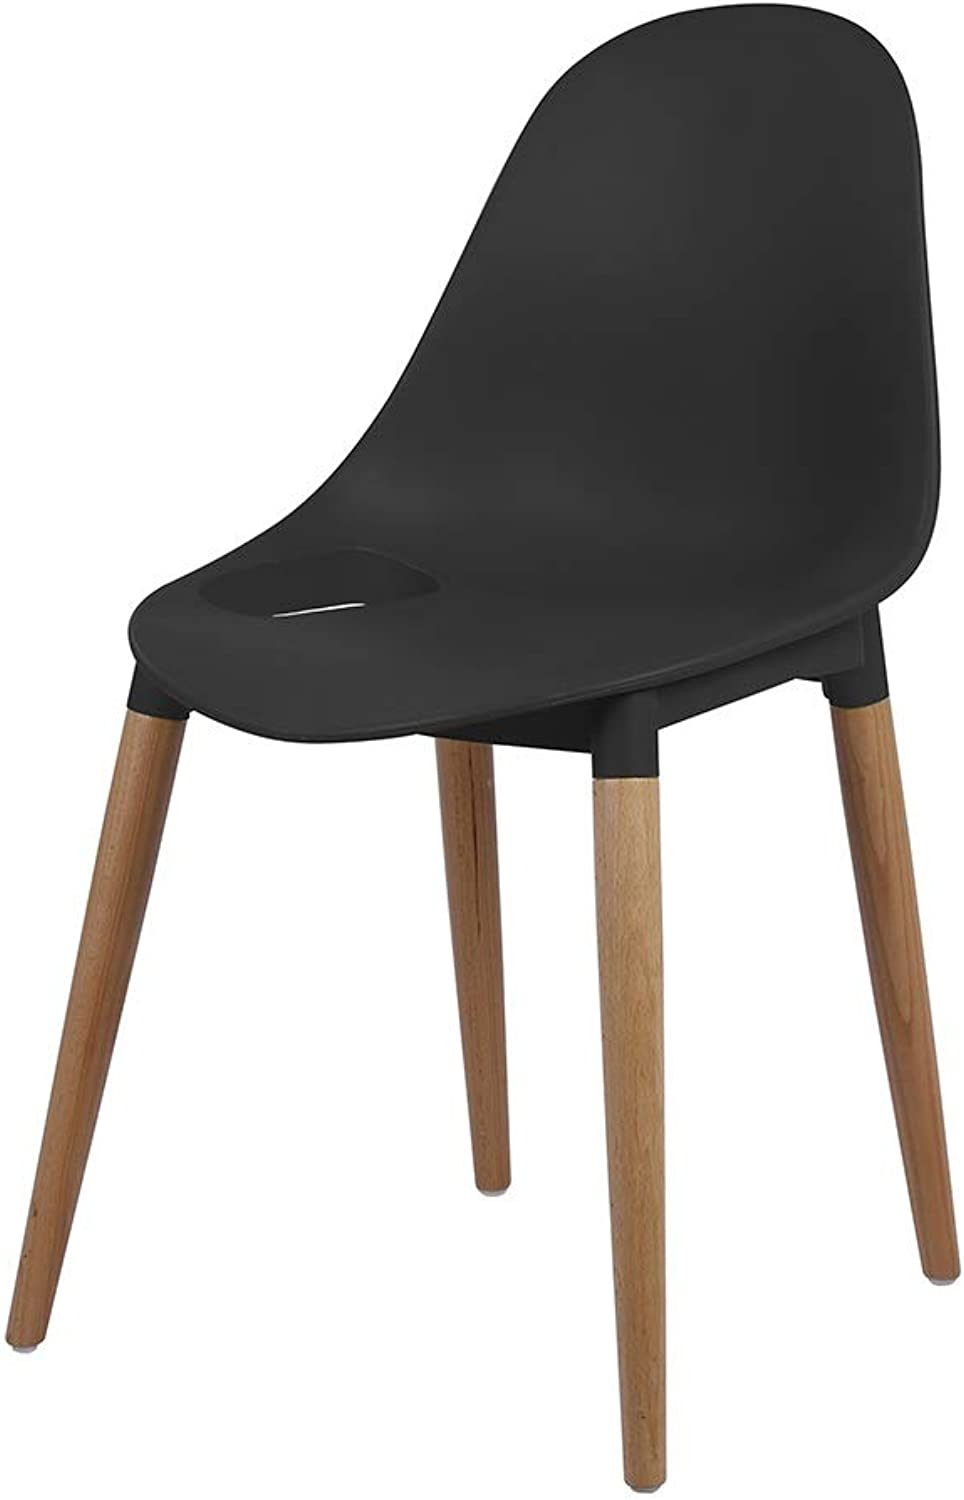 Plastic Stool, Backrest Chair, Dining Table and Chair, Solid Wood Office Chair, Creative Conference Chair (color   Black)